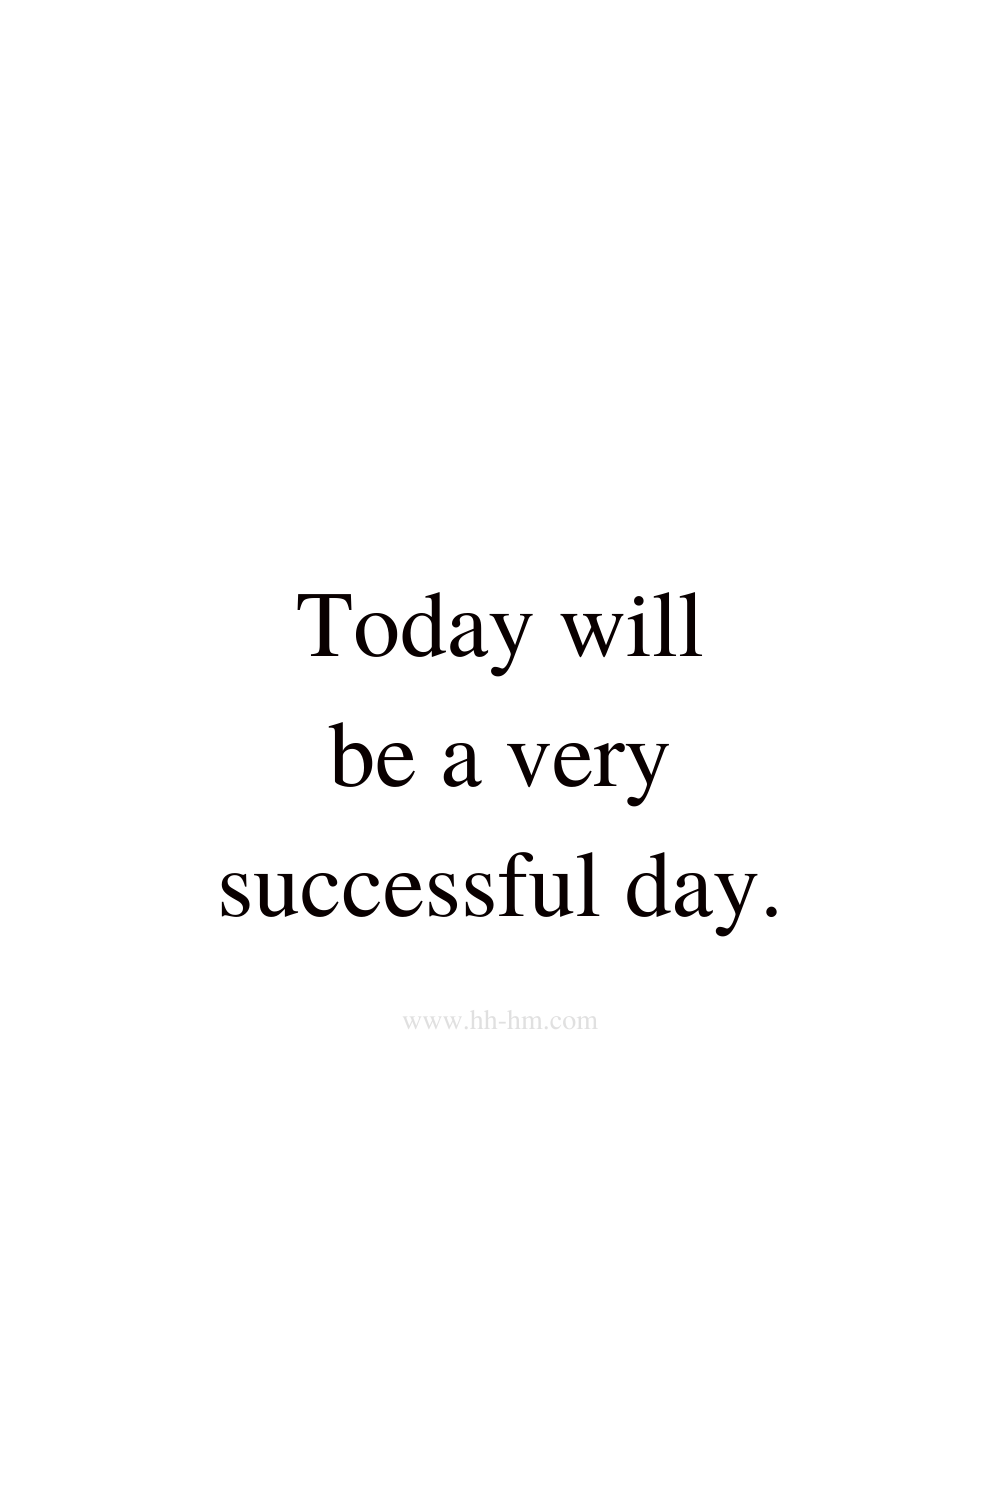 Today will be a very successful day - morning affirmations for success